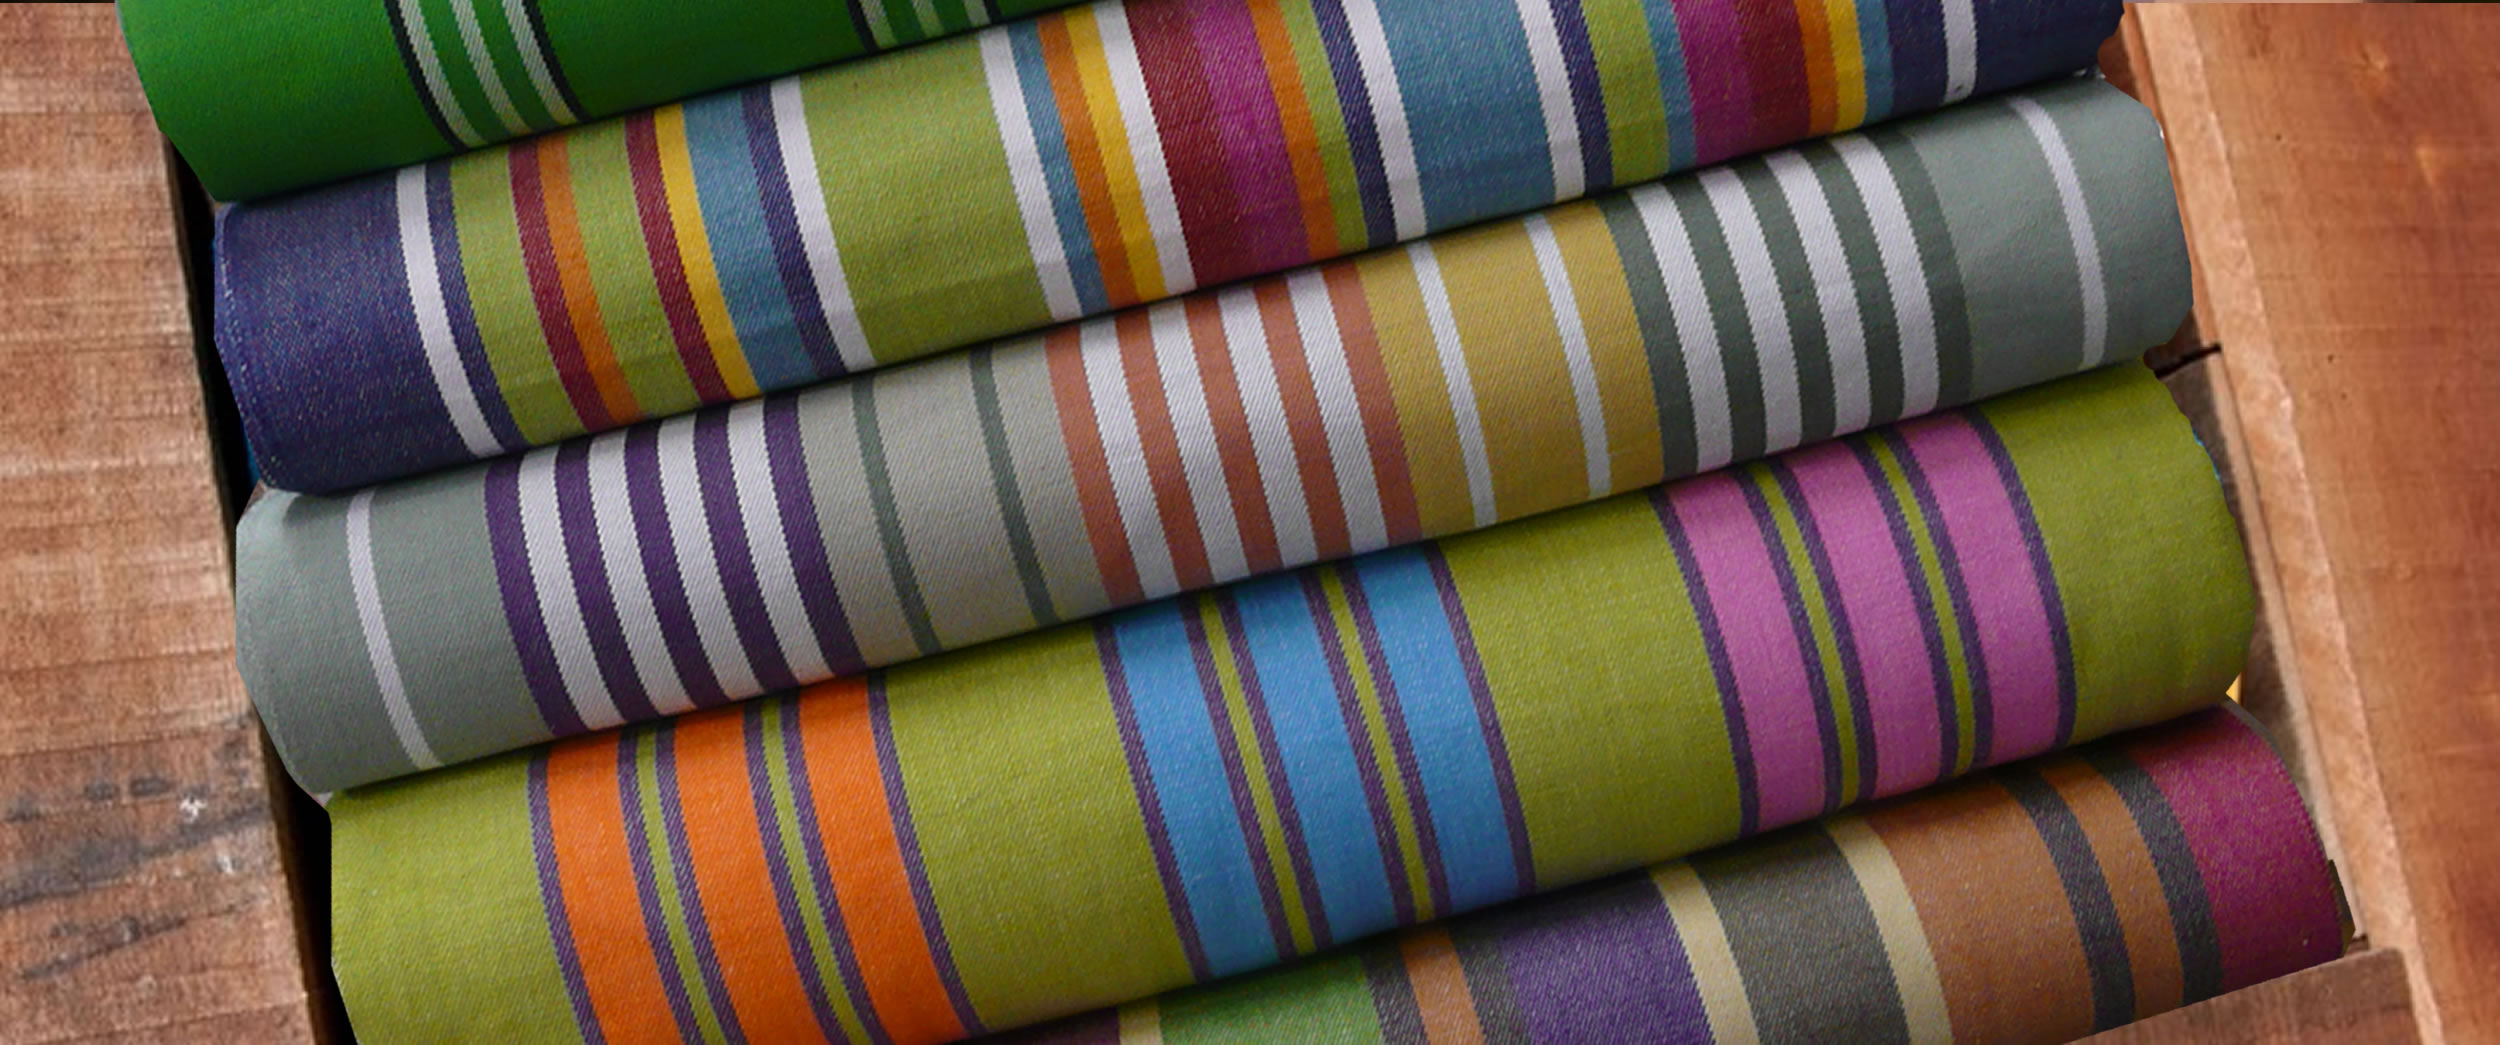 Deckchair Canvas | Striped Deck Chair Fabric - Yoga stripe